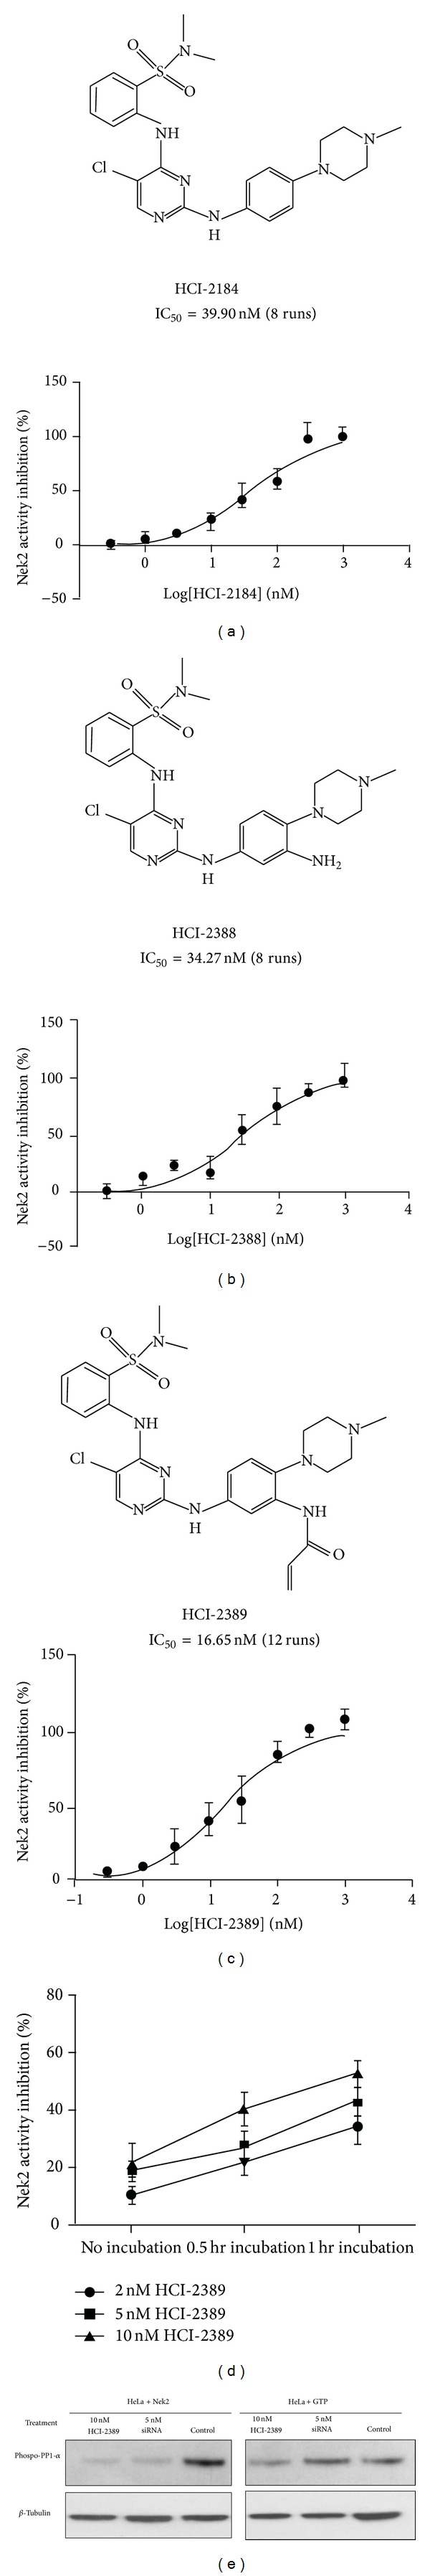 Novel Nek2 Inhibitors significantly Inhibit Nek2's activity. (a), (b), and (c), three compounds, HCI-2184, HCI-2388, and HCI-2389 were designed by virtual screening. Synthesized compounds were validated by NMR and MS. The abilities of the three compounds to inhibit Nek2 kinase were tested by Kinase-Glo Assay. (d) HCI-2389 acts as an irreversible Nek2 inhibitor. A 0.5 hr incubation of HCI-2389 and Nek2 kinase increased the ability of HCI-2389 to inhibit Nek2. This effect was more pronounced when HCI-2389 was incubated with Nek2 kinase for 1 hr. (e) 10 nM HCI-2389 treatment for 72 hours greatly decreased the level of phosphorylated PP1-α in both Nek2 overexpressed HeLa cells and GFP controls. The effect was equal to or greater than treatment with 5 nM Nek-2 siRNA.